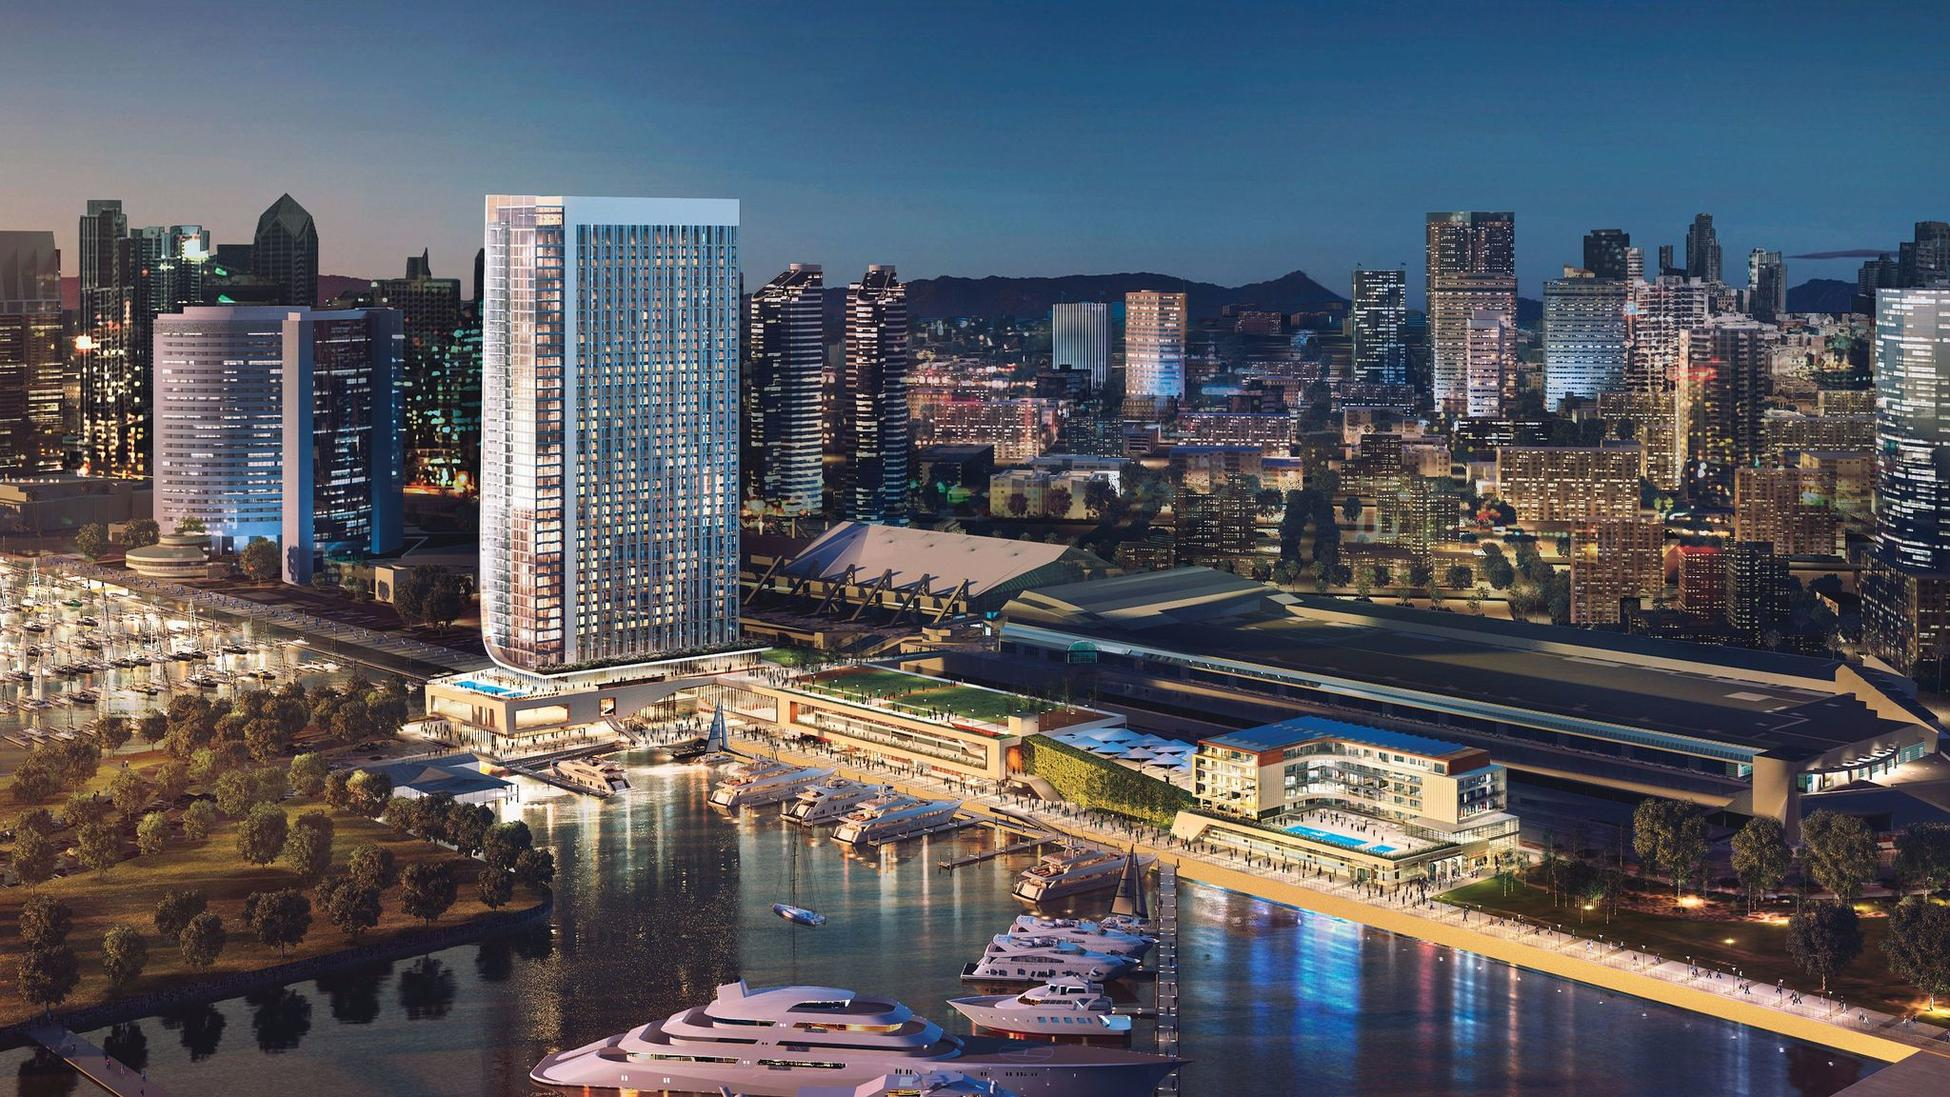 The Fifth Avenue Landing hotel would be built on the bayside of the San Diego Convention Center. (Gensler)